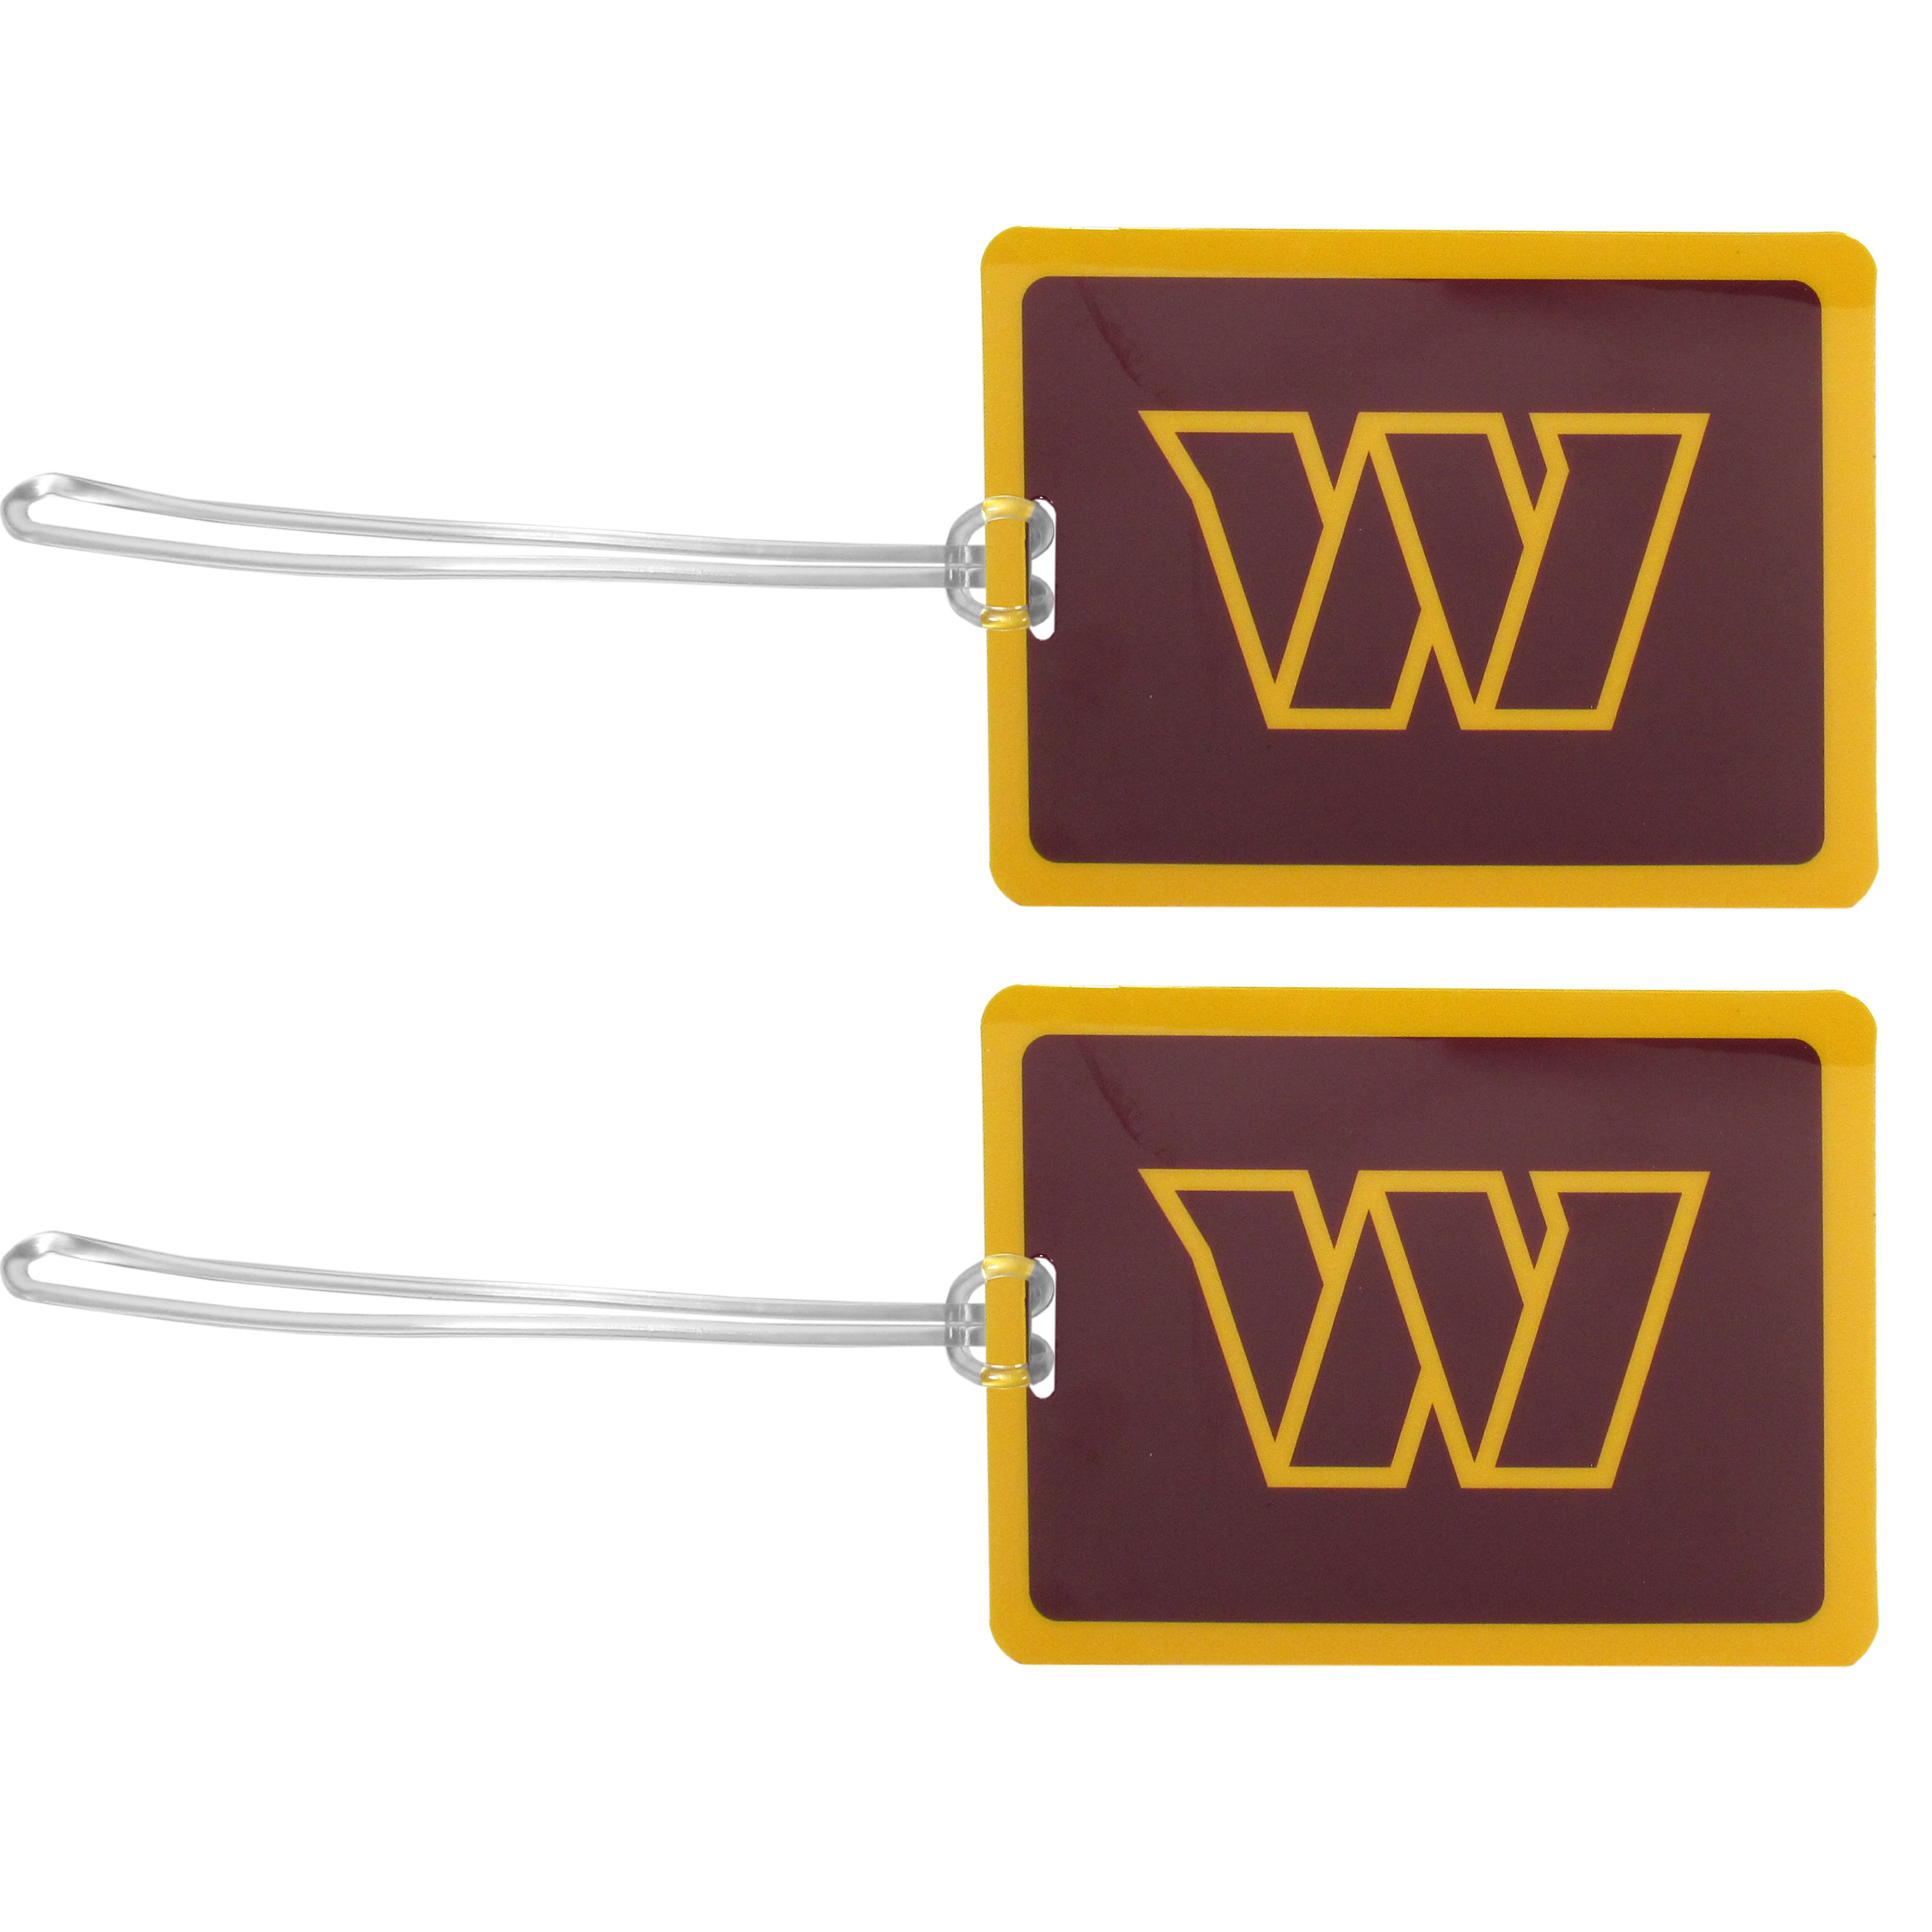 Washington Redskins Vinyl Luggage Tag, 2pk - Tired of trying to spot your suitcase or bag in a sea of luggage? Try our large and colorful Washington Redskins luggage tags. The tag is 4x3 inches and has a 5 inch cord to attach it easily to your bags, backpacks or luggage. The front of the tag features the team logo in a bright, team colored background and you can write you name, address and phone number on the back of the tag.